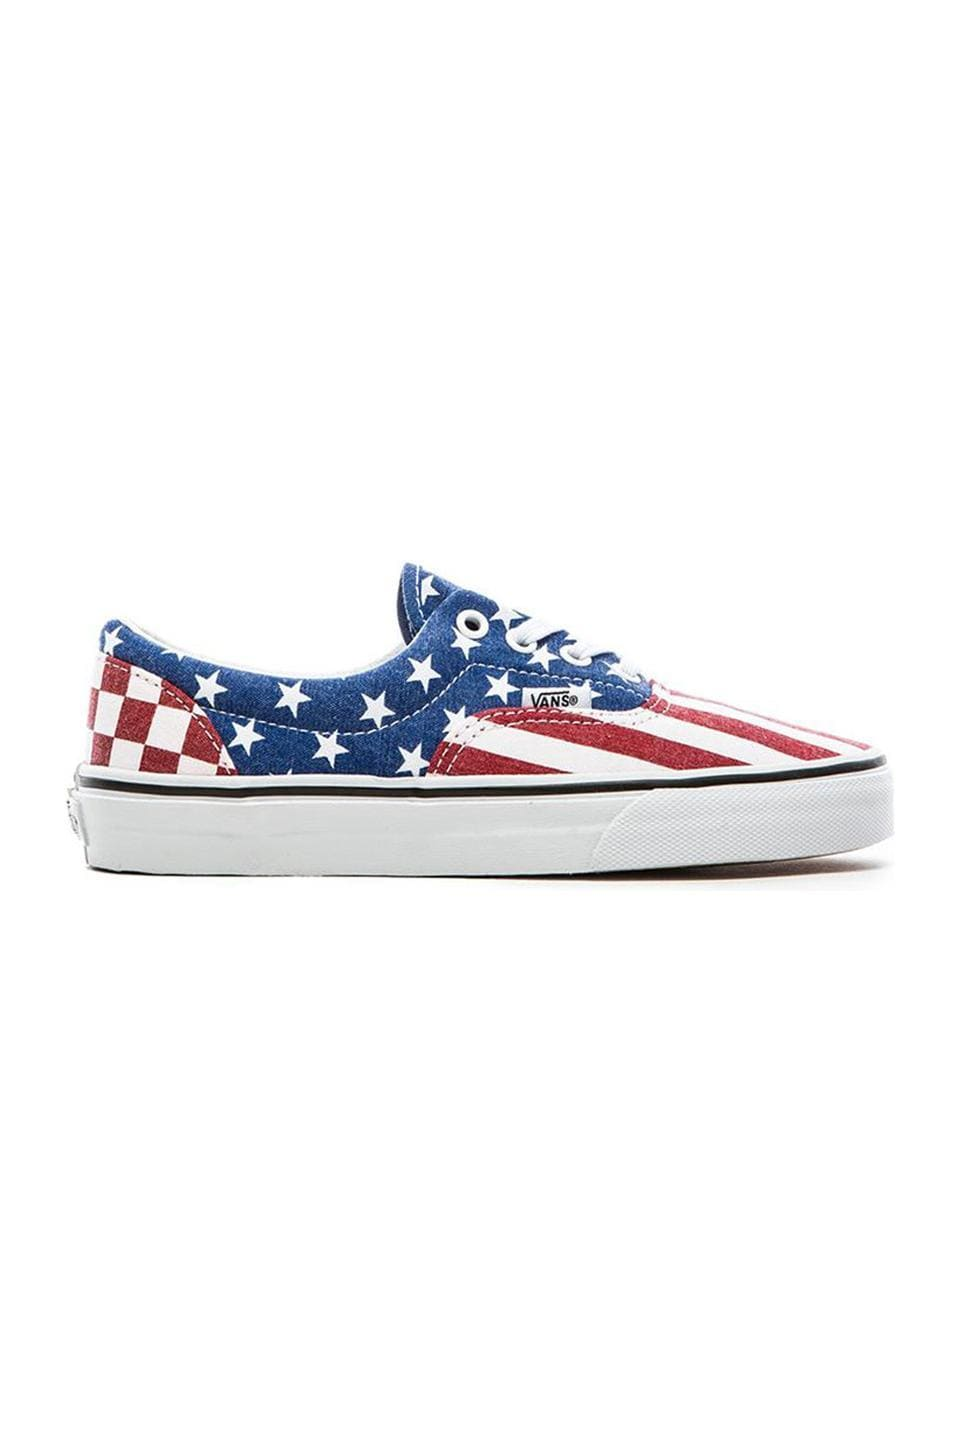 Vans Era Van Doren Sneaker in Stars & Stripes